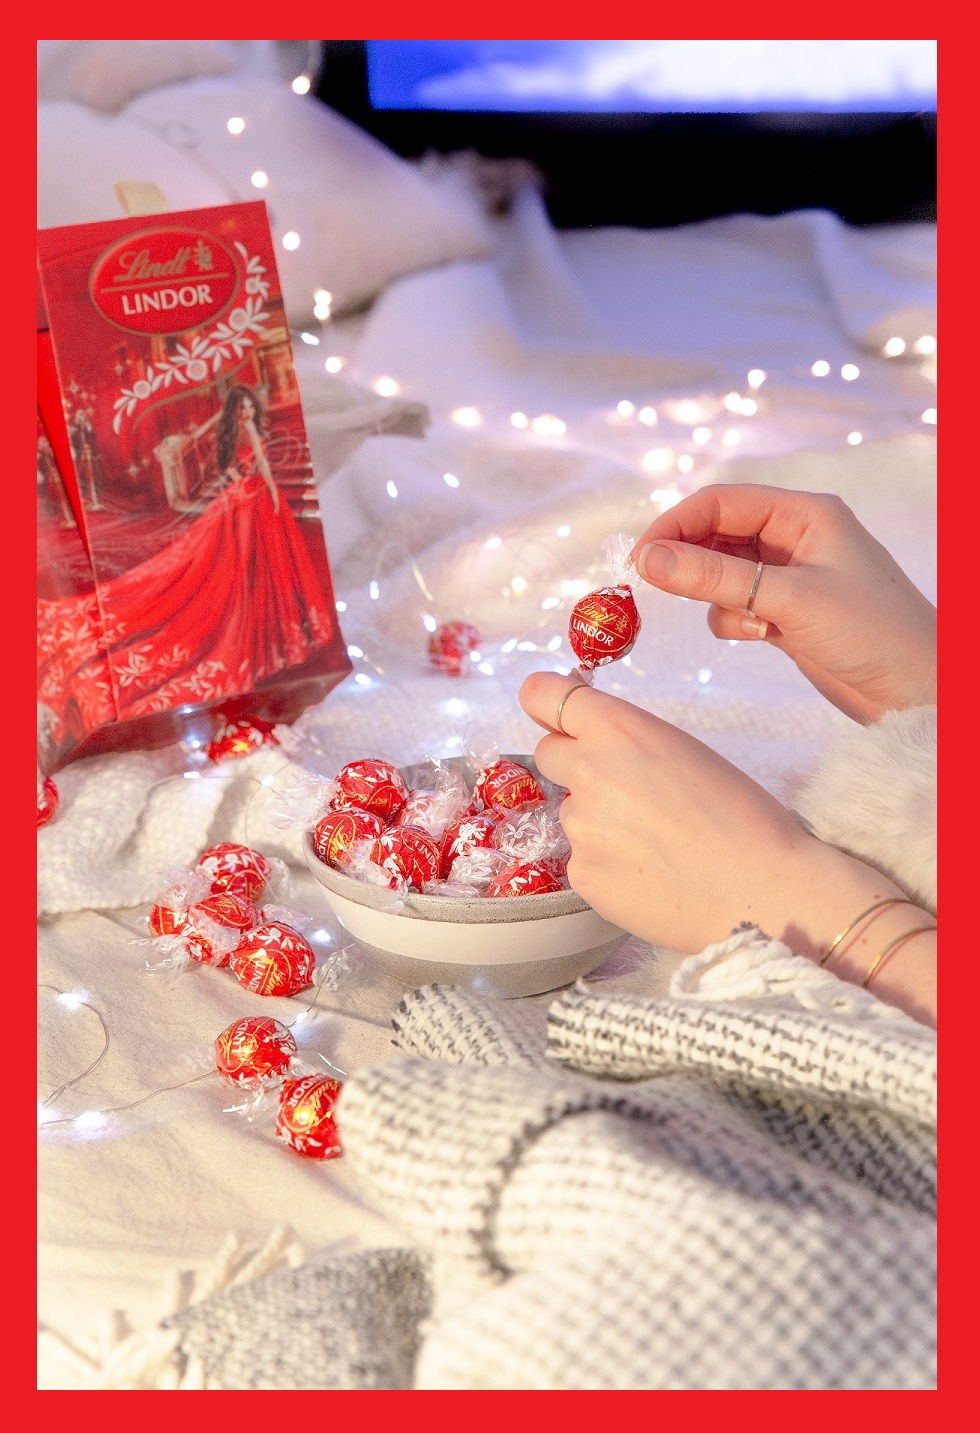 Enter for your chance to win  YOUR OWN LINDT AWARDS SHOW BOX AND A YEAR'S SUPPLY OF LINDOR TRUFFLES (Ends 9/30/2018)